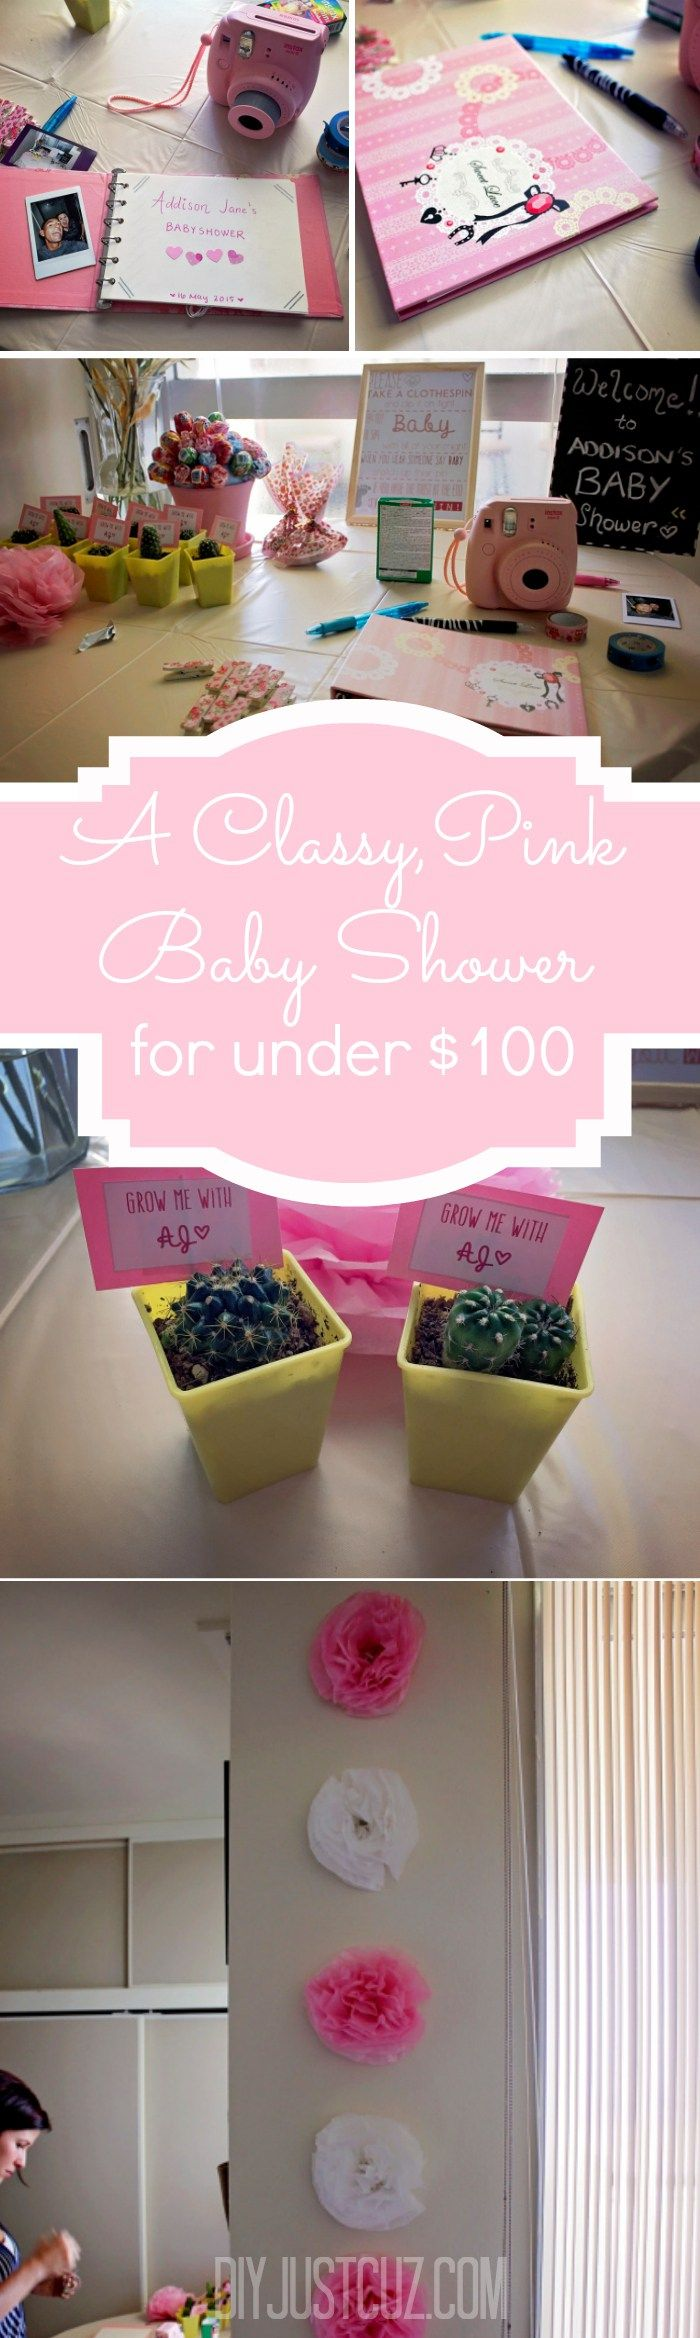 party planning and diy projects to throw a baby shower on a budget